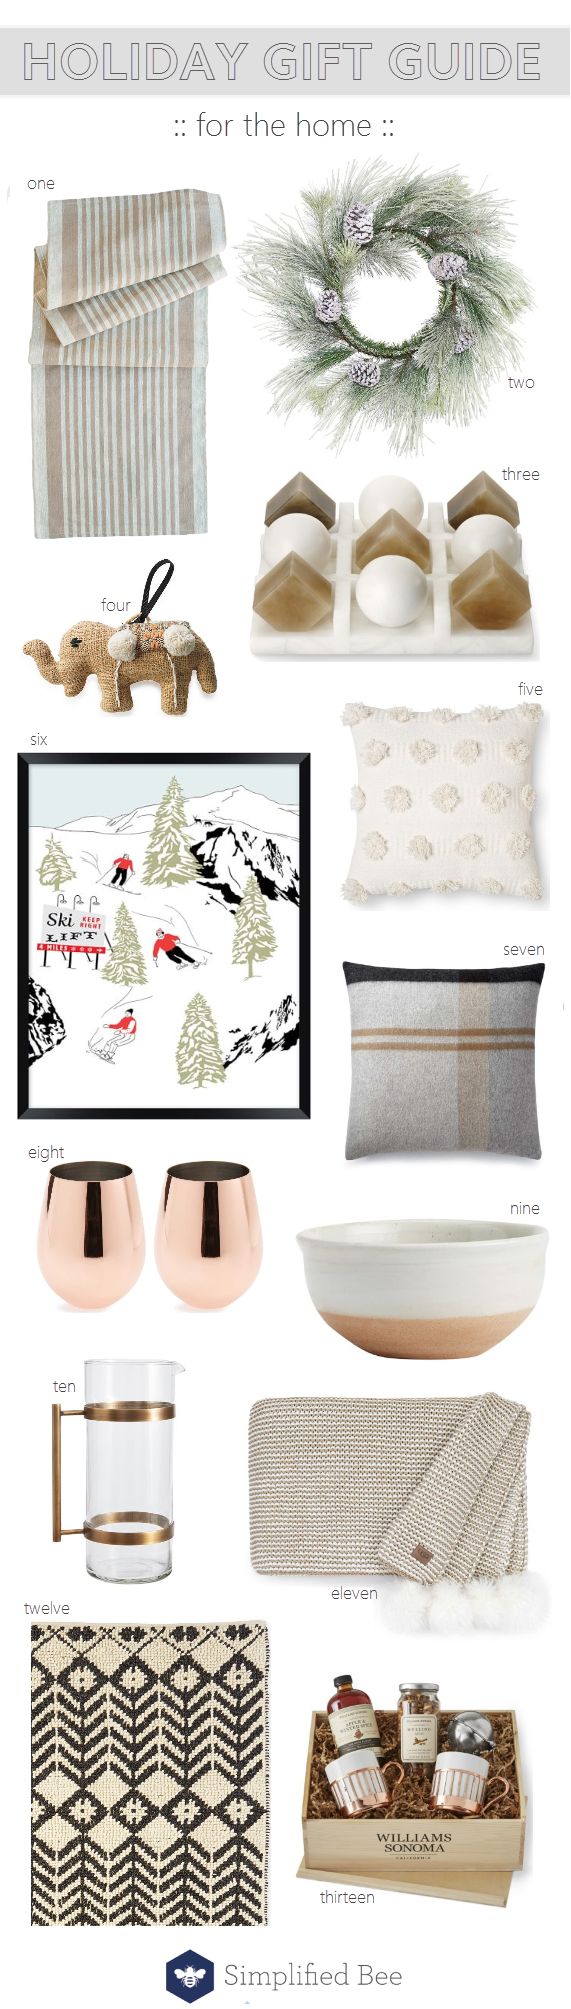 holiday gift guide for home // @simplifiedbee #giftguide #homedecor #holidaygifts